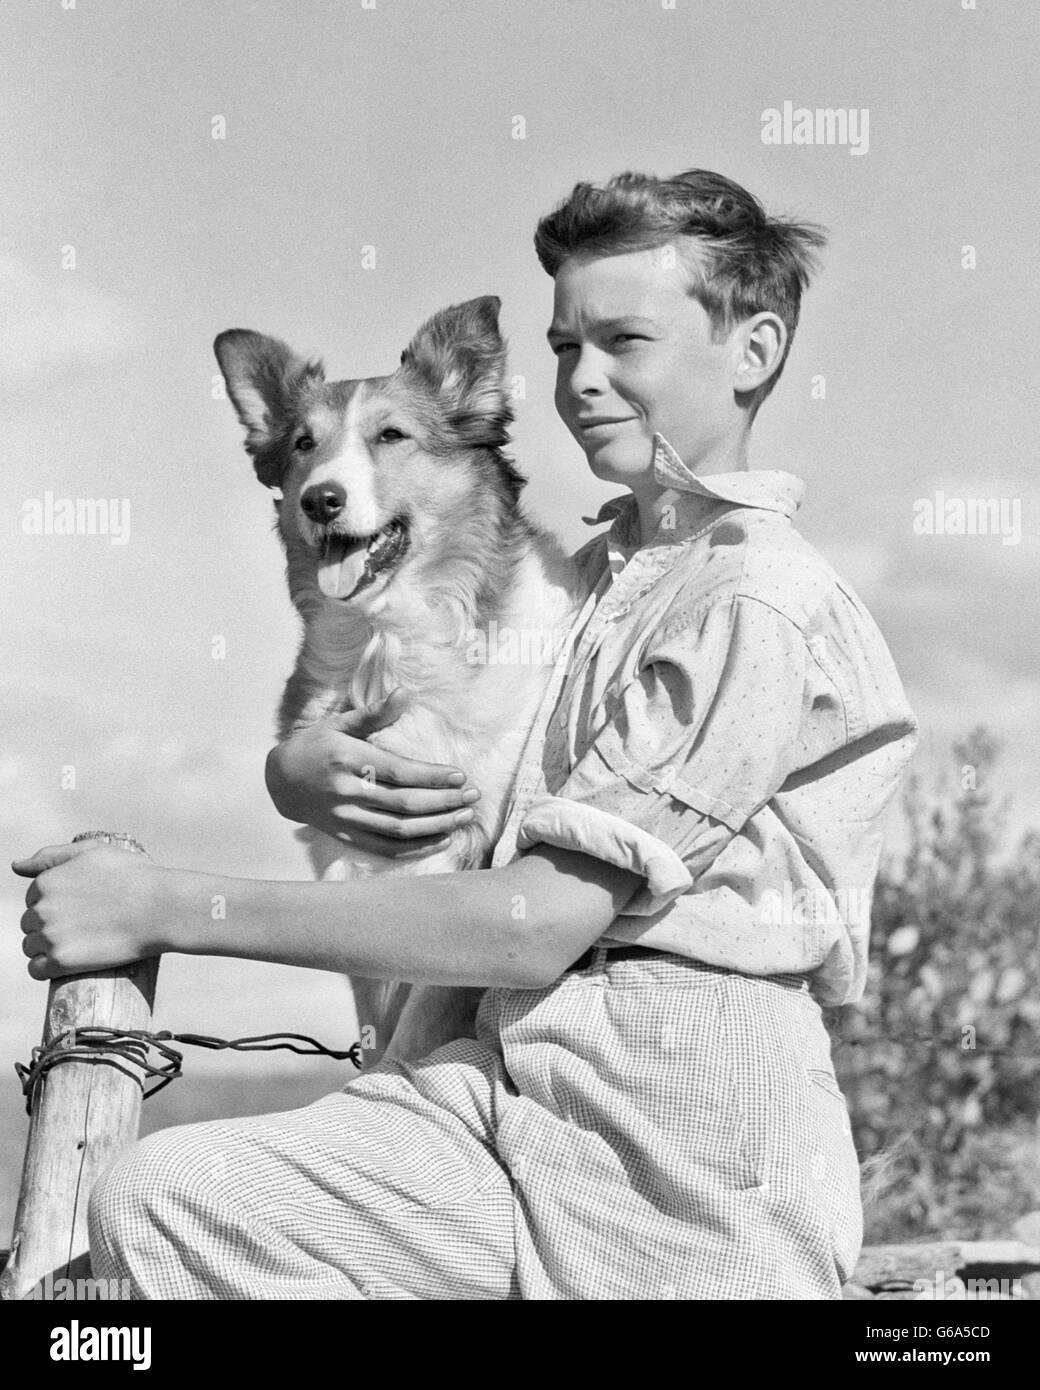 1930s 1940s PORTRAIT BOY SITTING FENCE HOLDING HIS COLLIE DOG PET - Stock Image